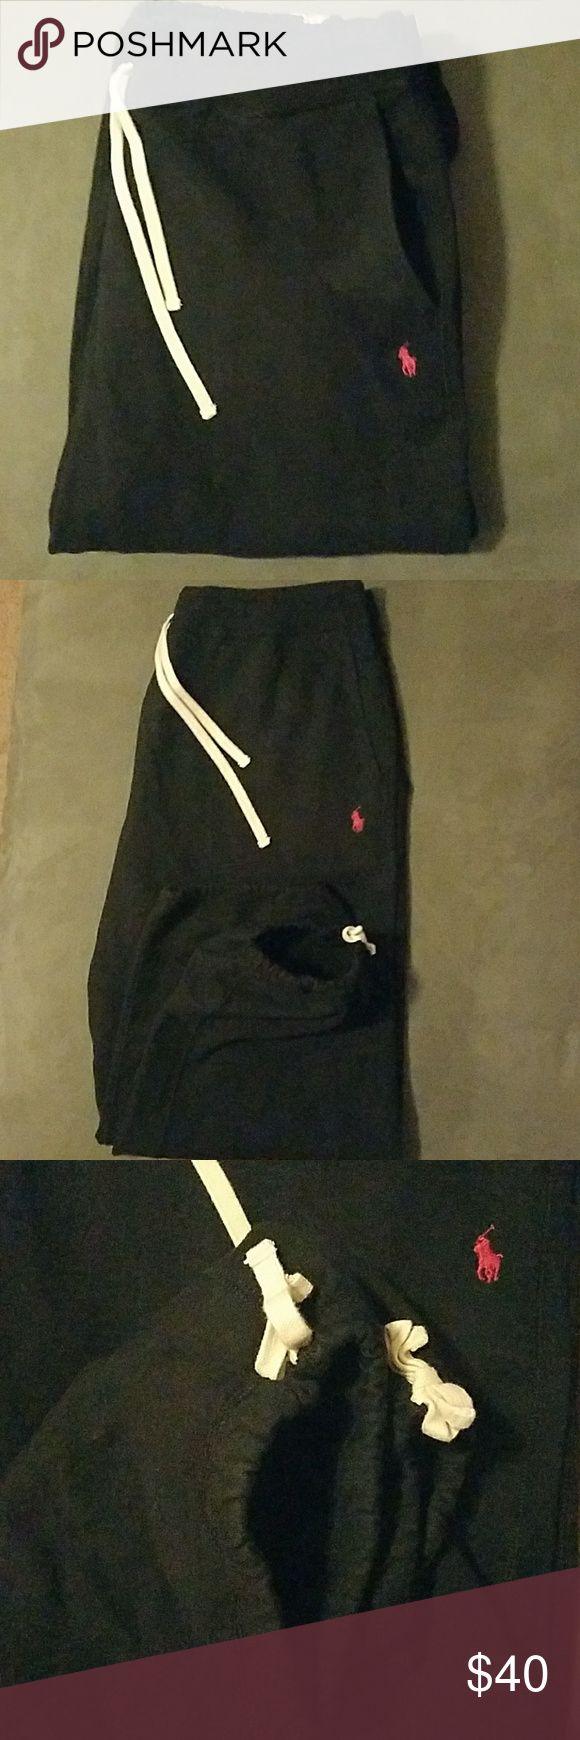 Polo Ralph Lauren Black Sweatpants Big & Tall 2XB Polo by Ralph Lauren Joggers Waistband drawstring  Leg opening elastic with drawstring Black with small red pony Big & tall Size 3XB Pre-owned an excellent condition with no damage or fly whatsoever. Polo by Ralph Lauren Pants Sweatpants & Joggers